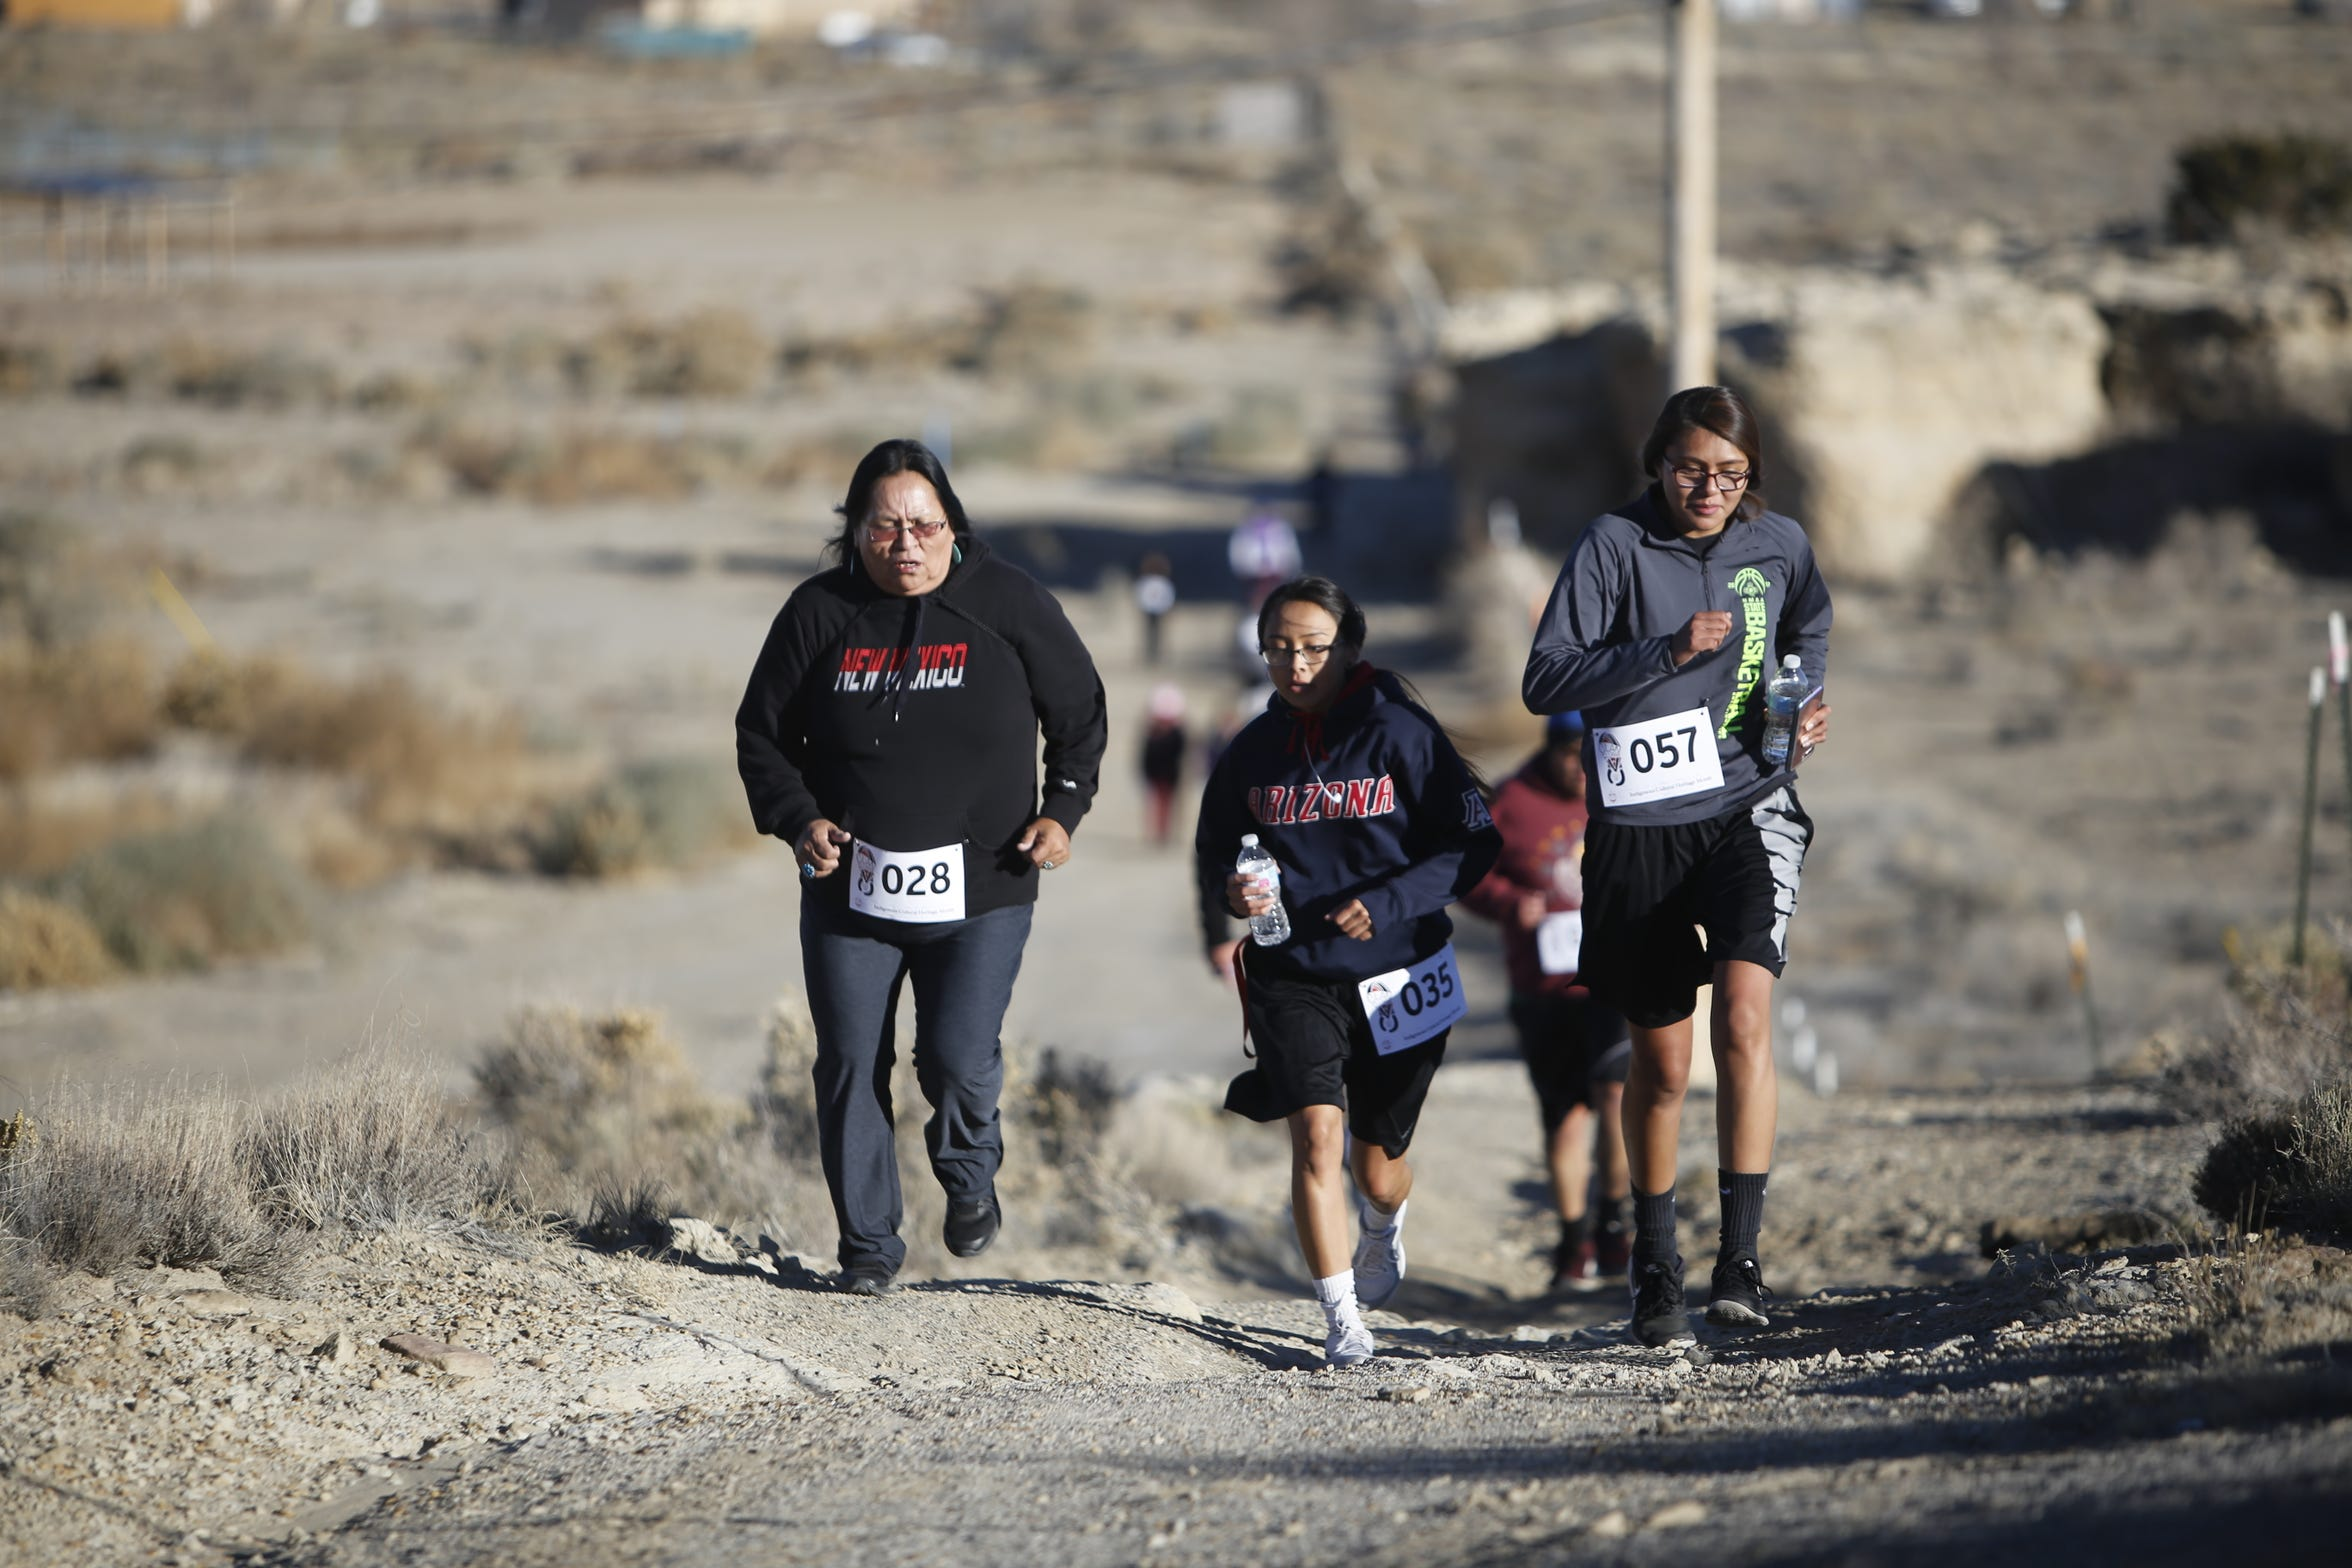 Participants run up a hill during the Clan Run on Monday at Navajo Technical University in Crownpoint.